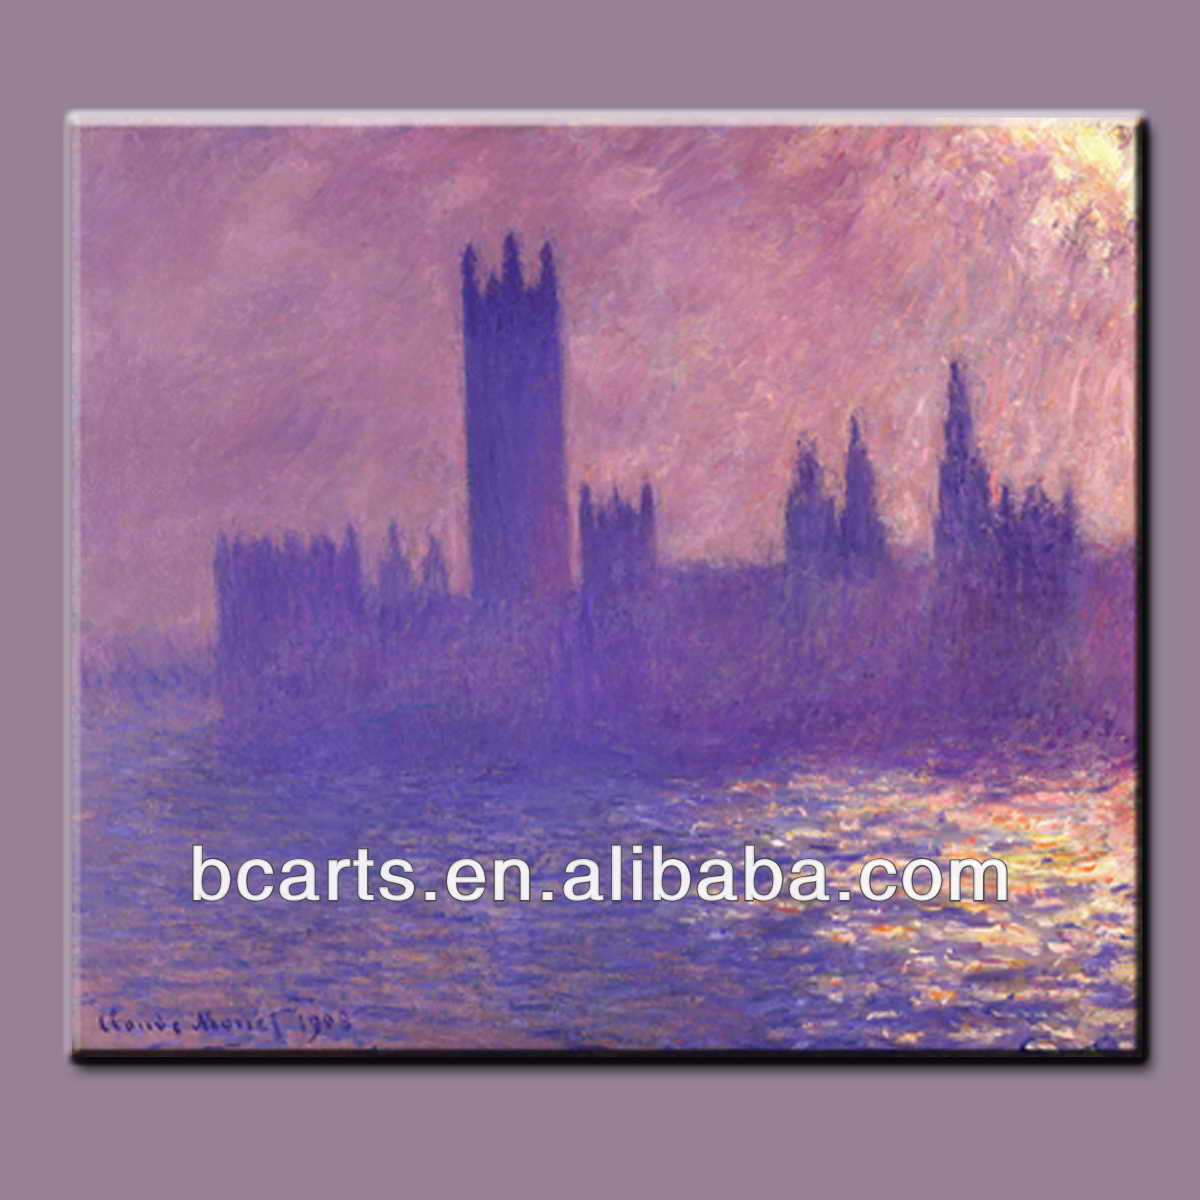 European castle building painting, high quality hand-painted oil painting abstract art by famous artists